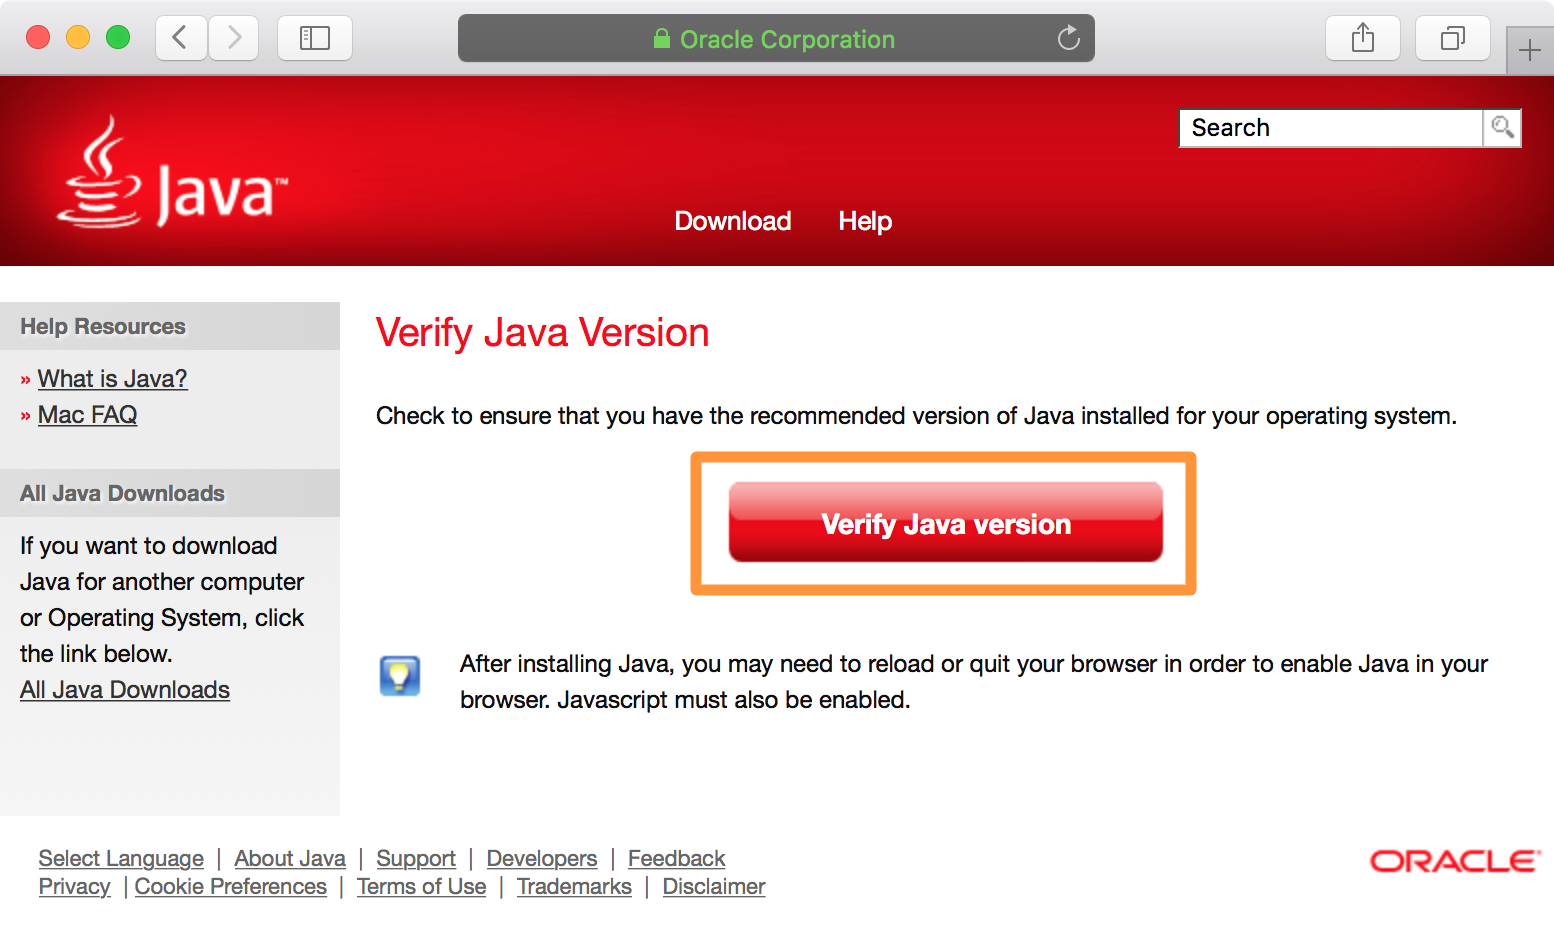 Verify Java Version Website Button